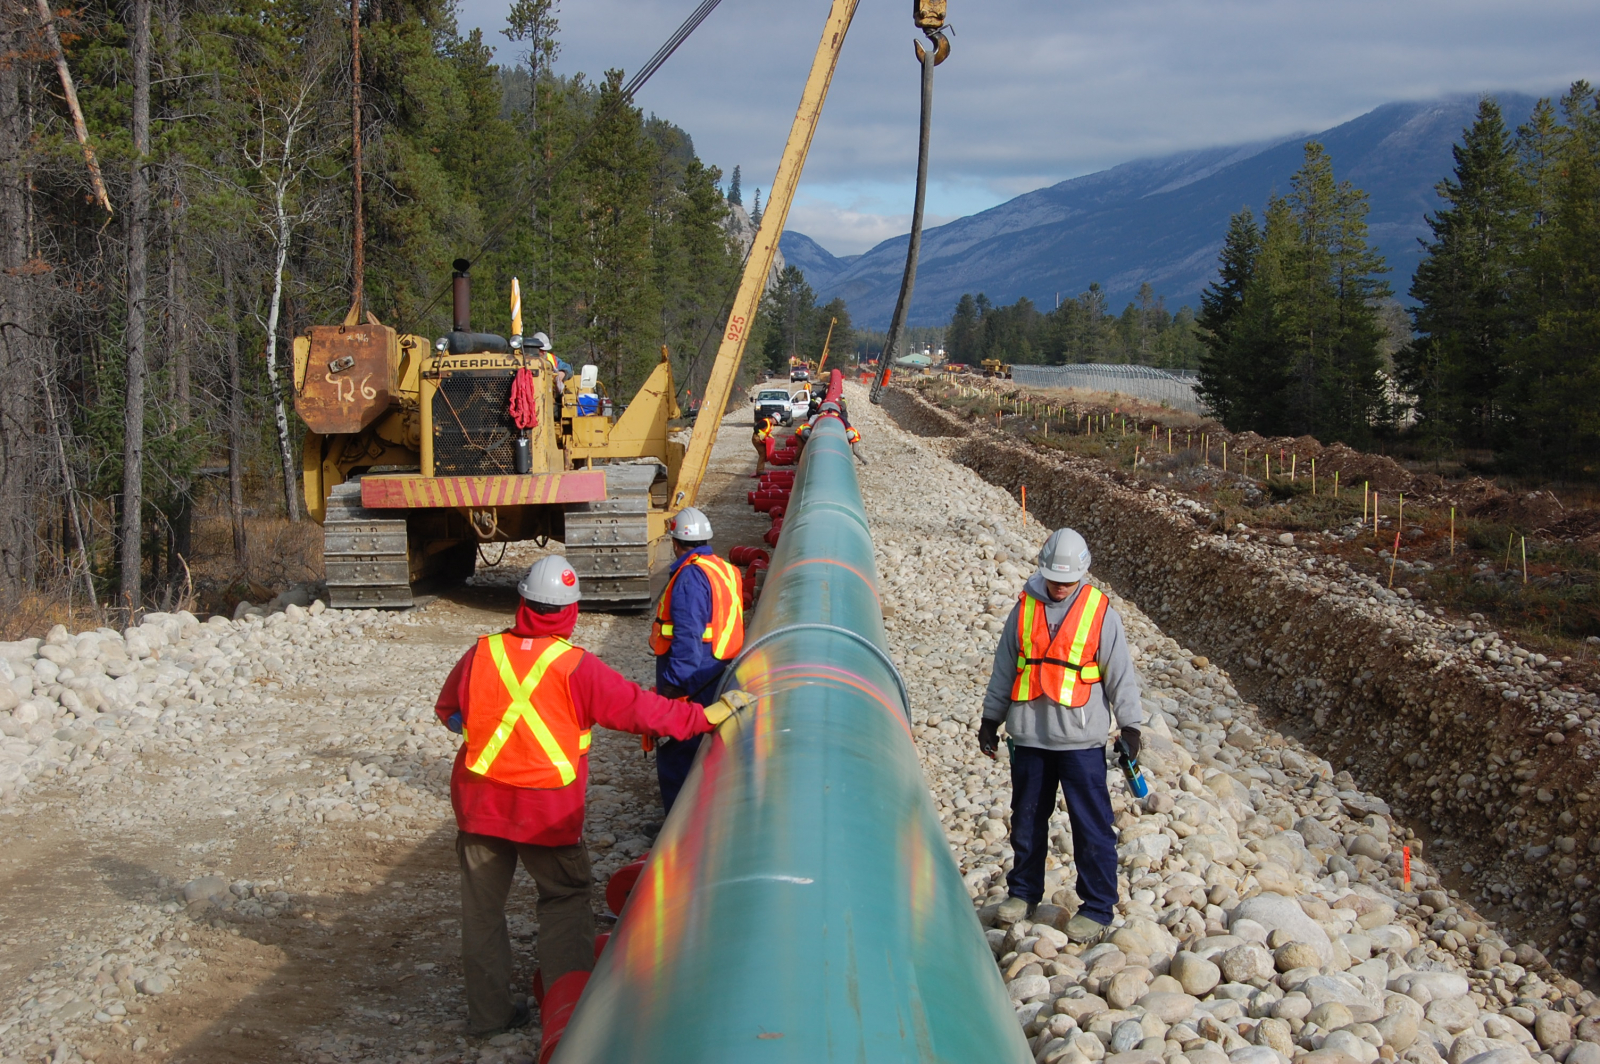 Saskatchewan Premier Scott Moe urging feds to restart Trans Mountain project